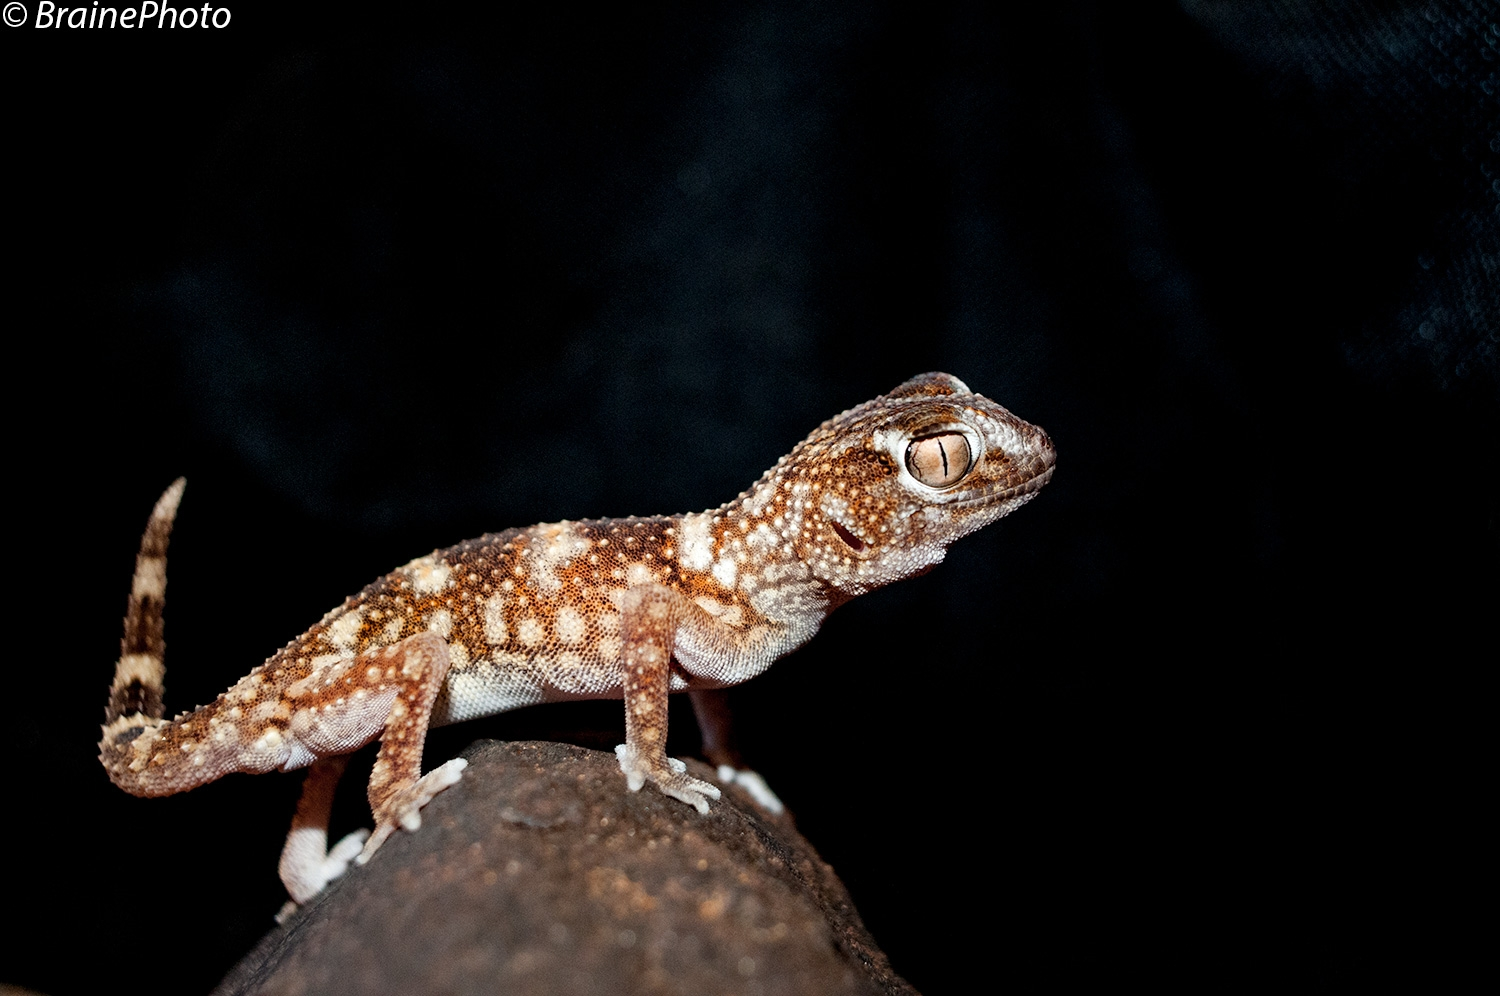 Our Desert Night Walks take you into the gravel plains on Swakopmund's outskirts. Exciting nocturnal animals that we find here include spiders, geckos, scorpions, snakes, gerbils and with great luck a Brown Hyena. This Giant Ground Gecko is a popular find.